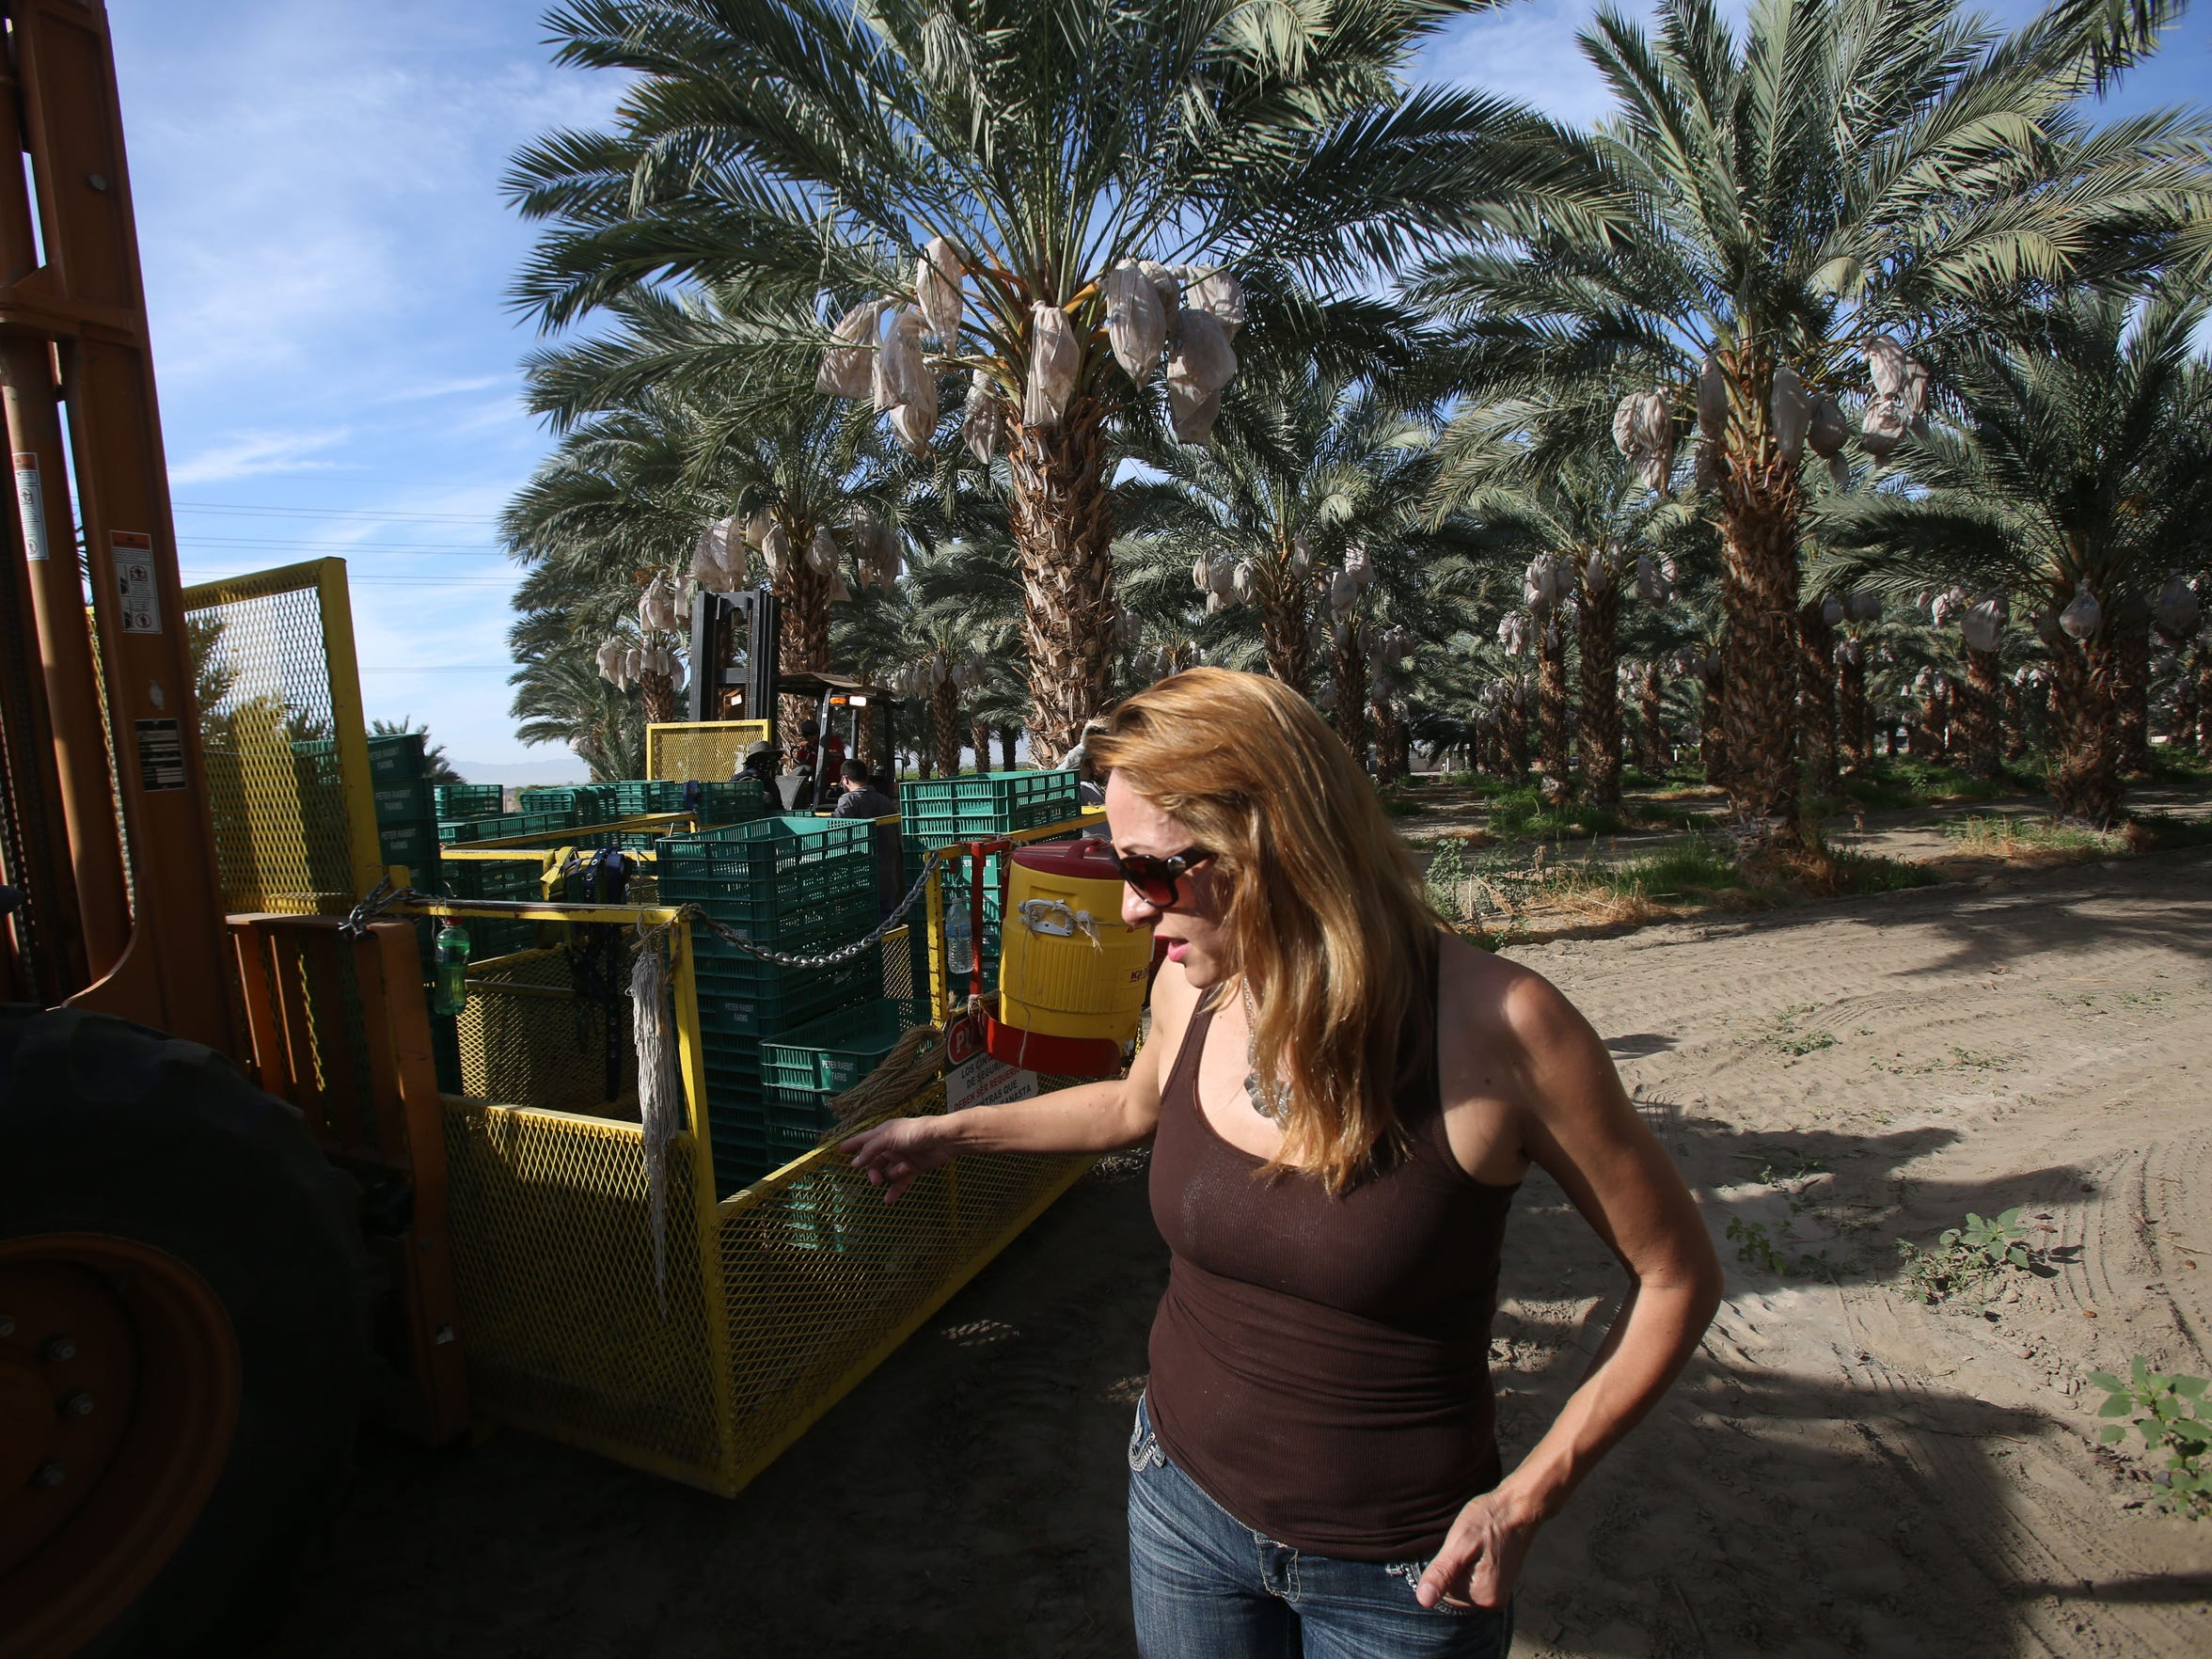 Community worker Lorena Martinez tells a foreman in September that cups are missing near a water station in a Date Palm grove near Mecca, California.